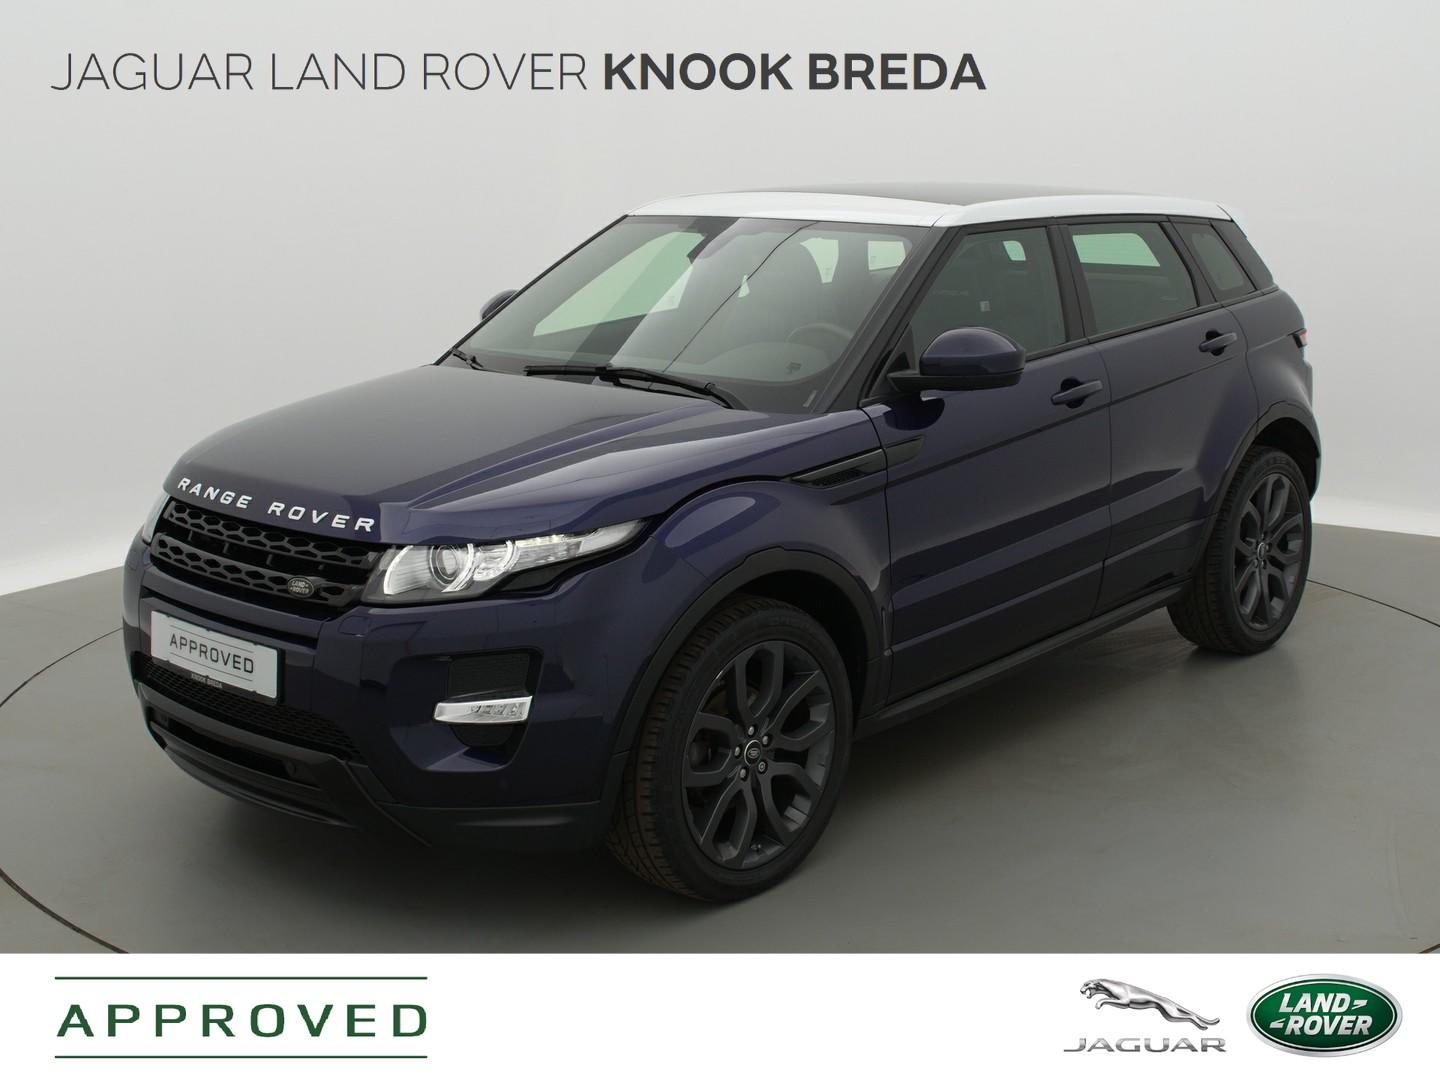 Land rover Range rover evoque Ed4 inspired by britain